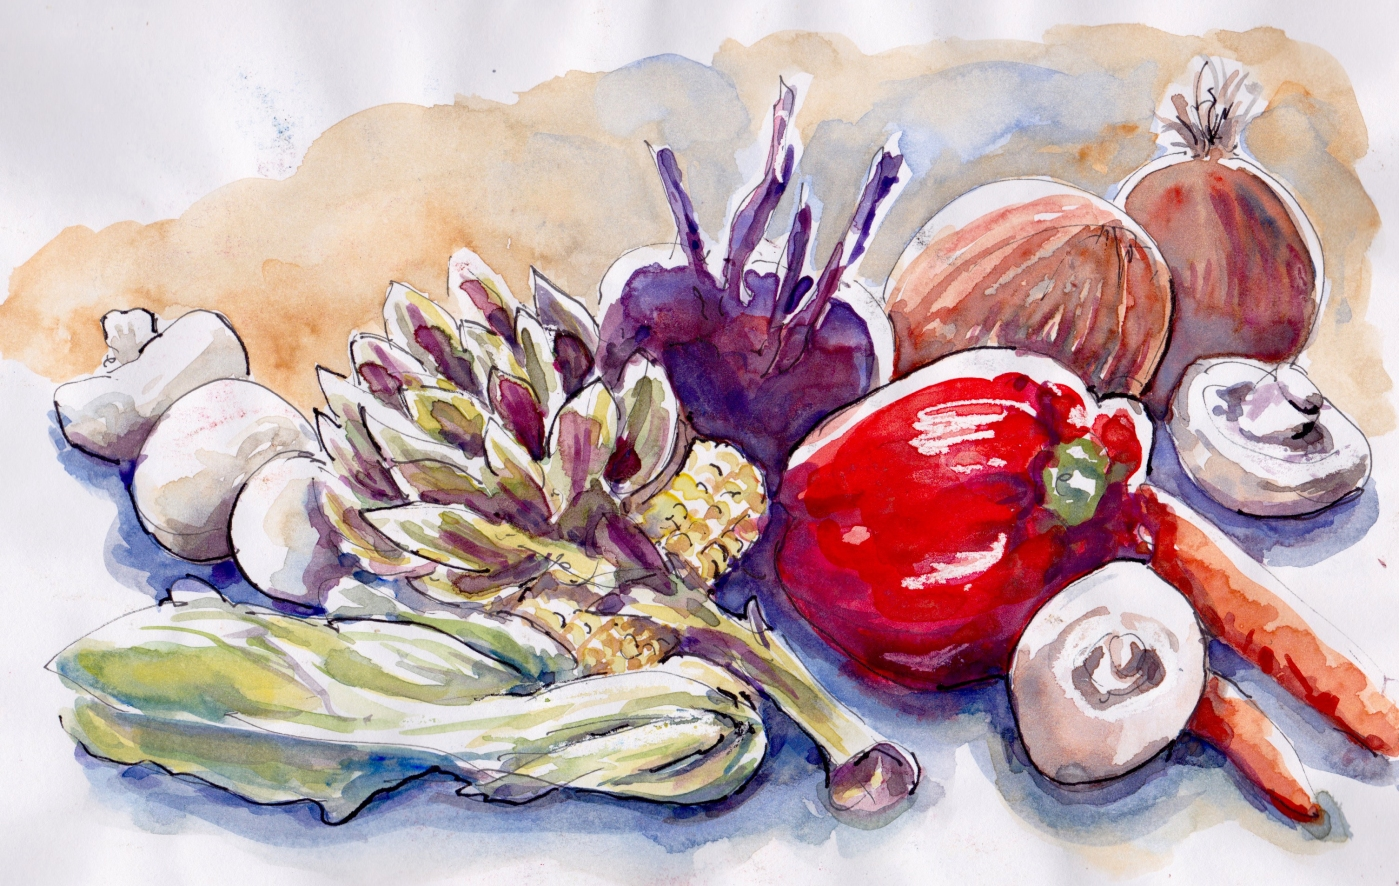 Doodlewash and watercolor painting by Judy Salleh of artichokes and vegetables carrots onions mushrooms